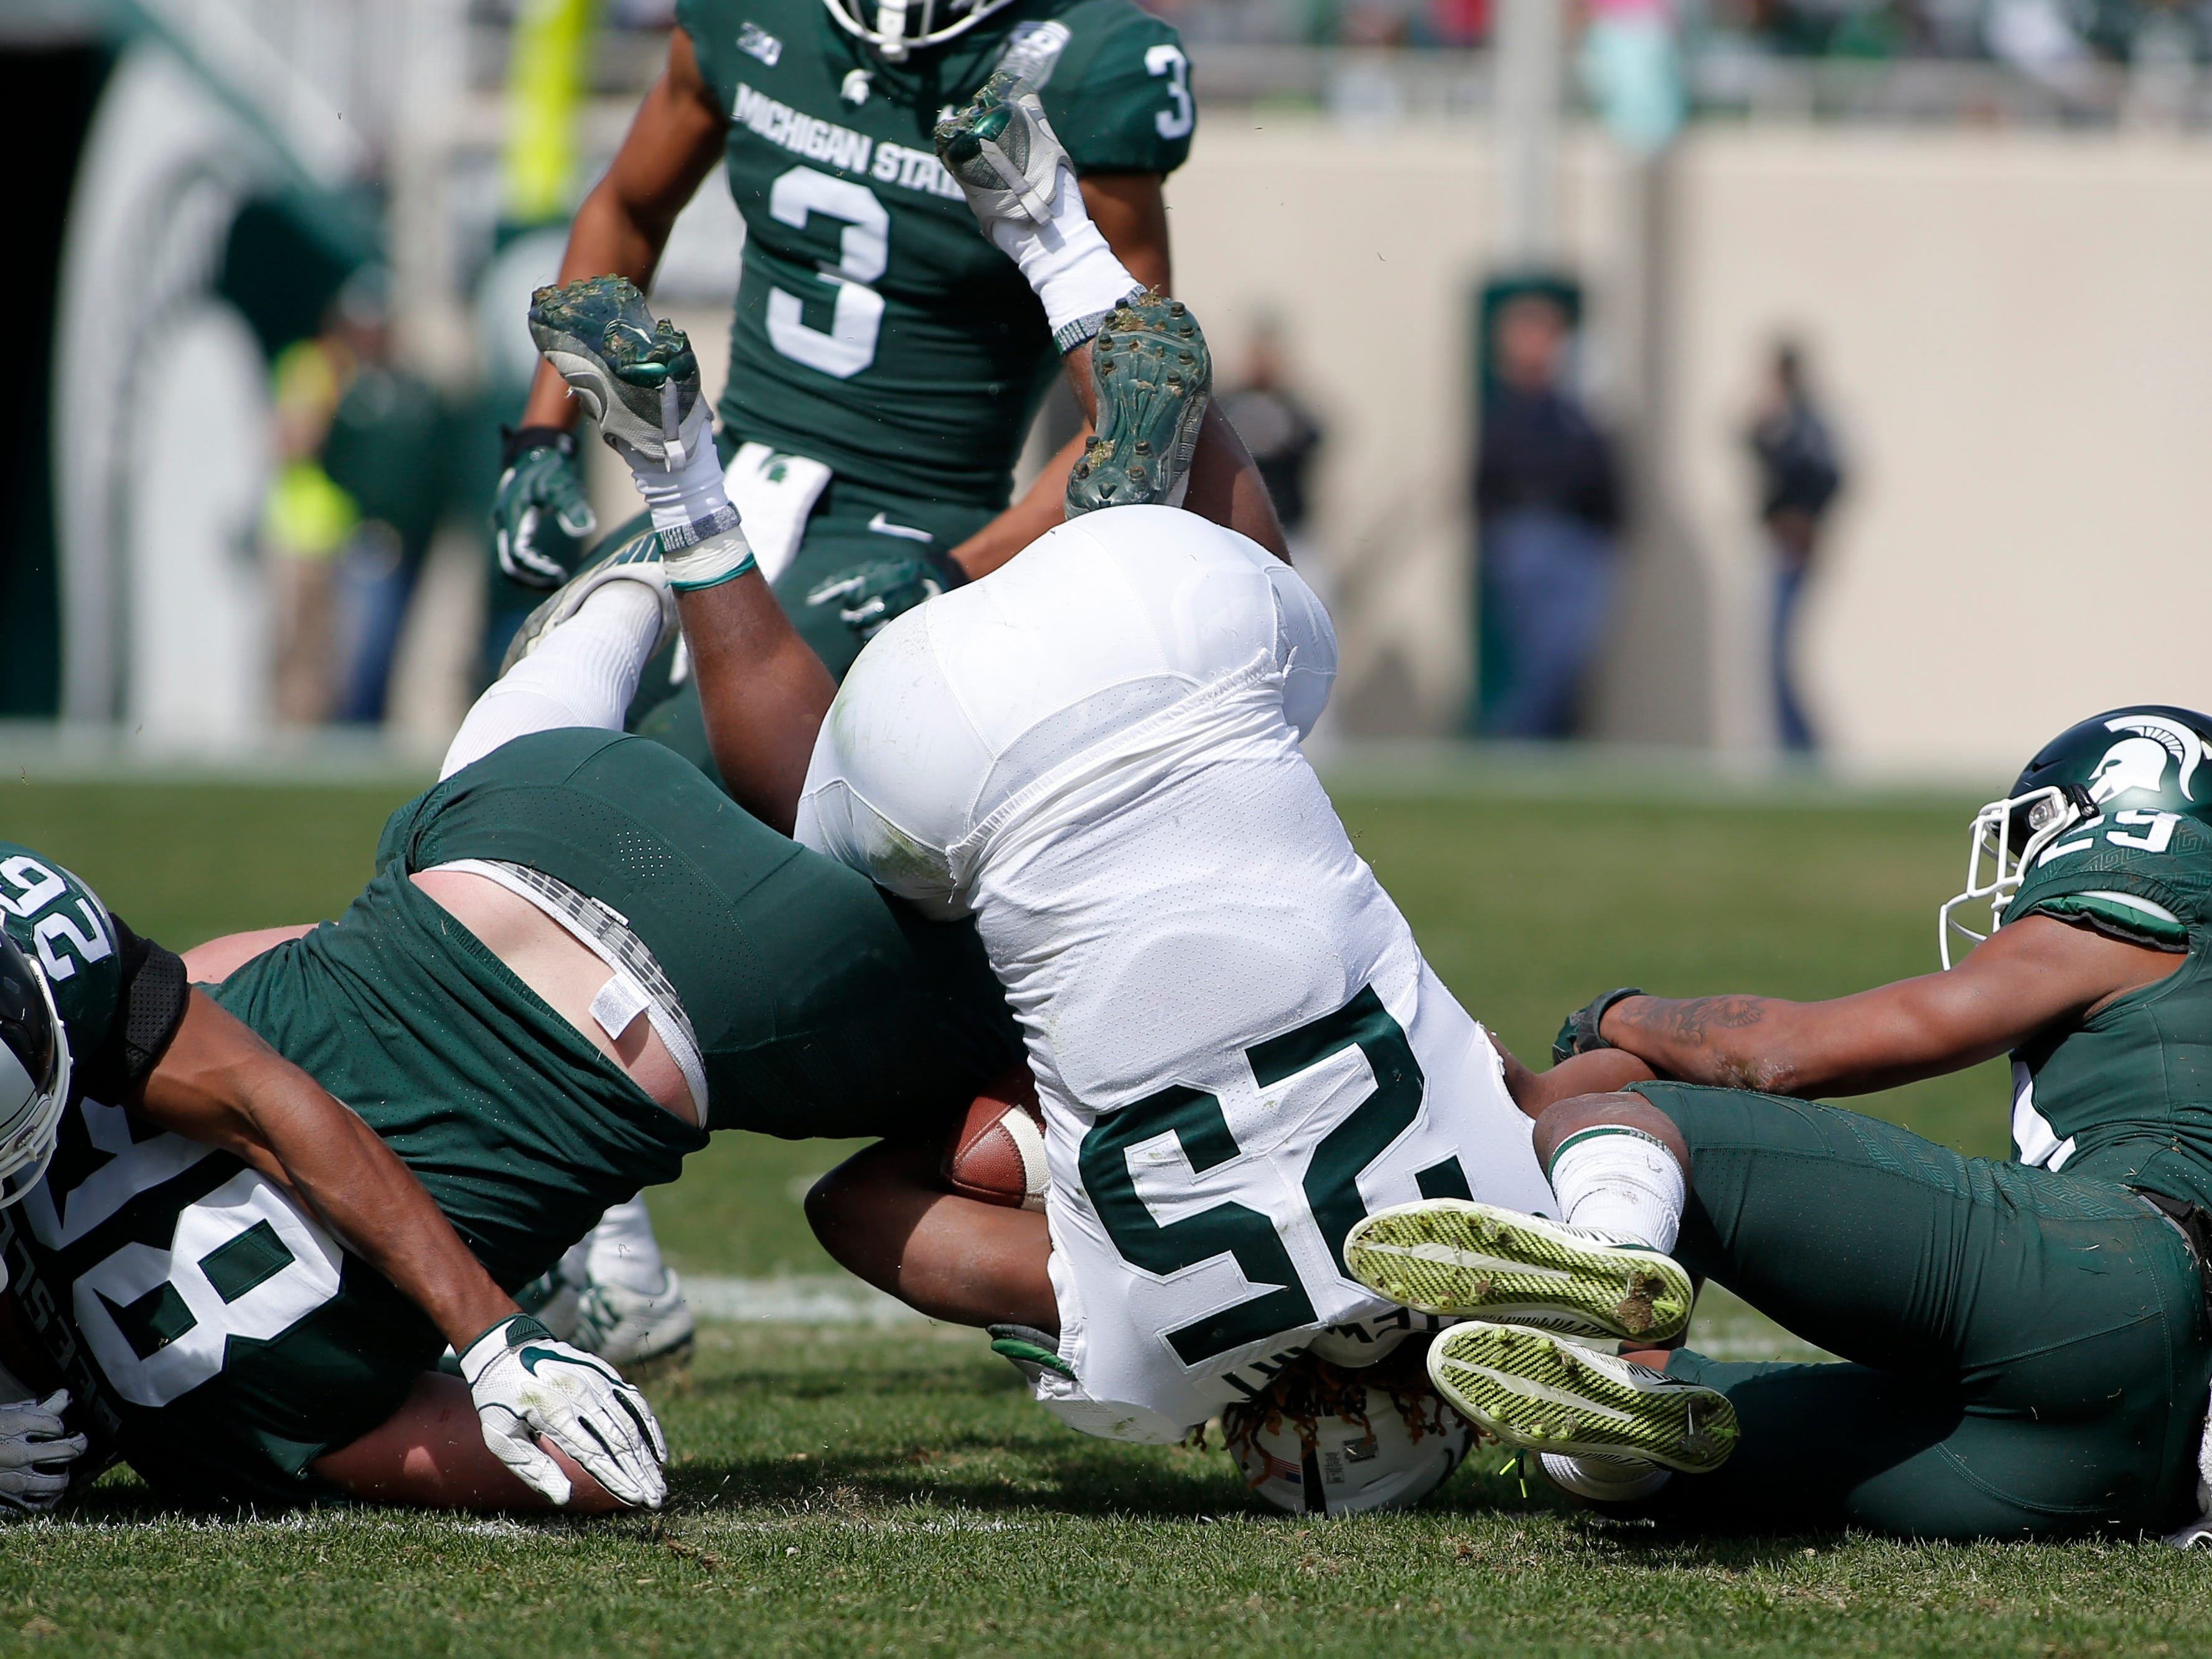 Michigan State's Darrell Stewart Jr. (25) is upended by Shakur Brown, right, Brandon Bouyer-Randle (26) and Drew Beesley during an NCAA college football spring scrimmage game, Saturday, April 13, 2019, in East Lansing, Mich. (AP Photo/Al Goldis)